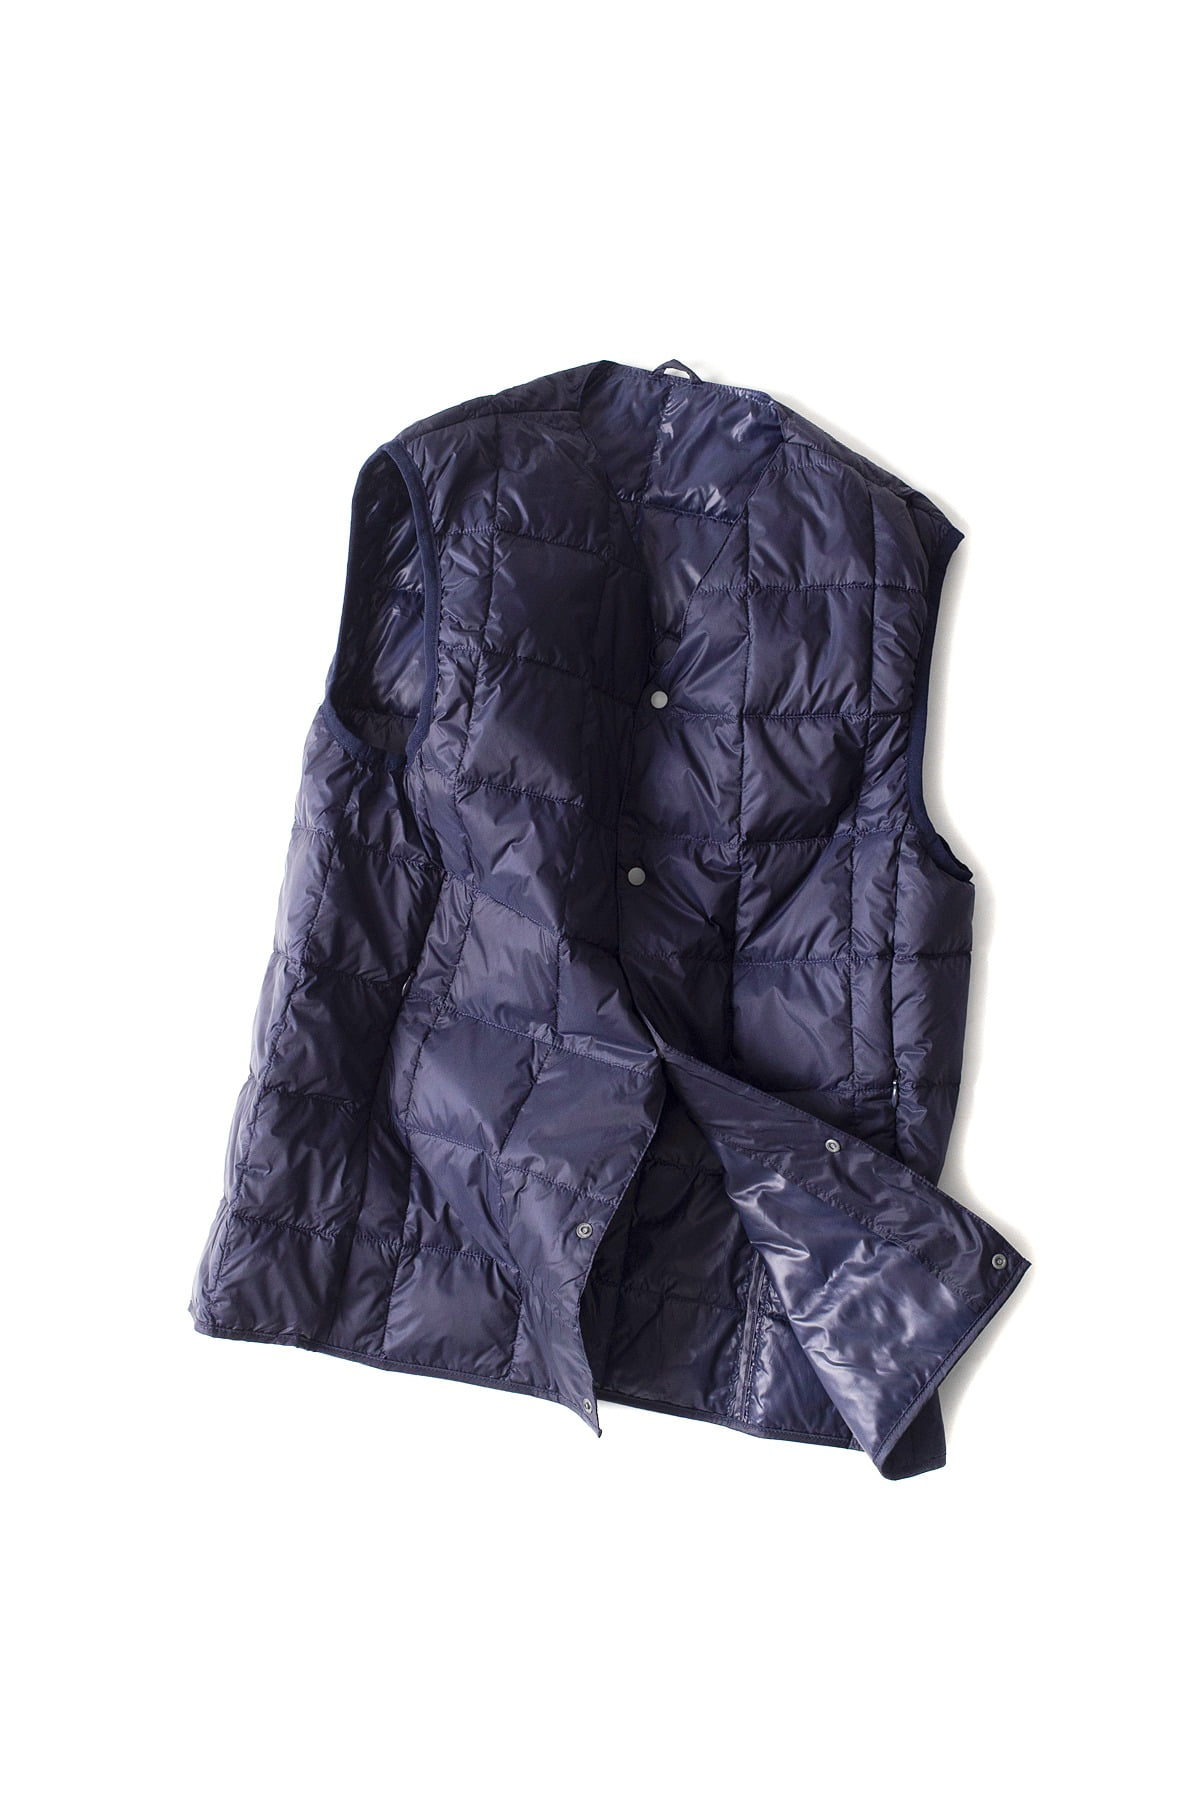 TAION :  V Neck Button Down Vest (Navy)